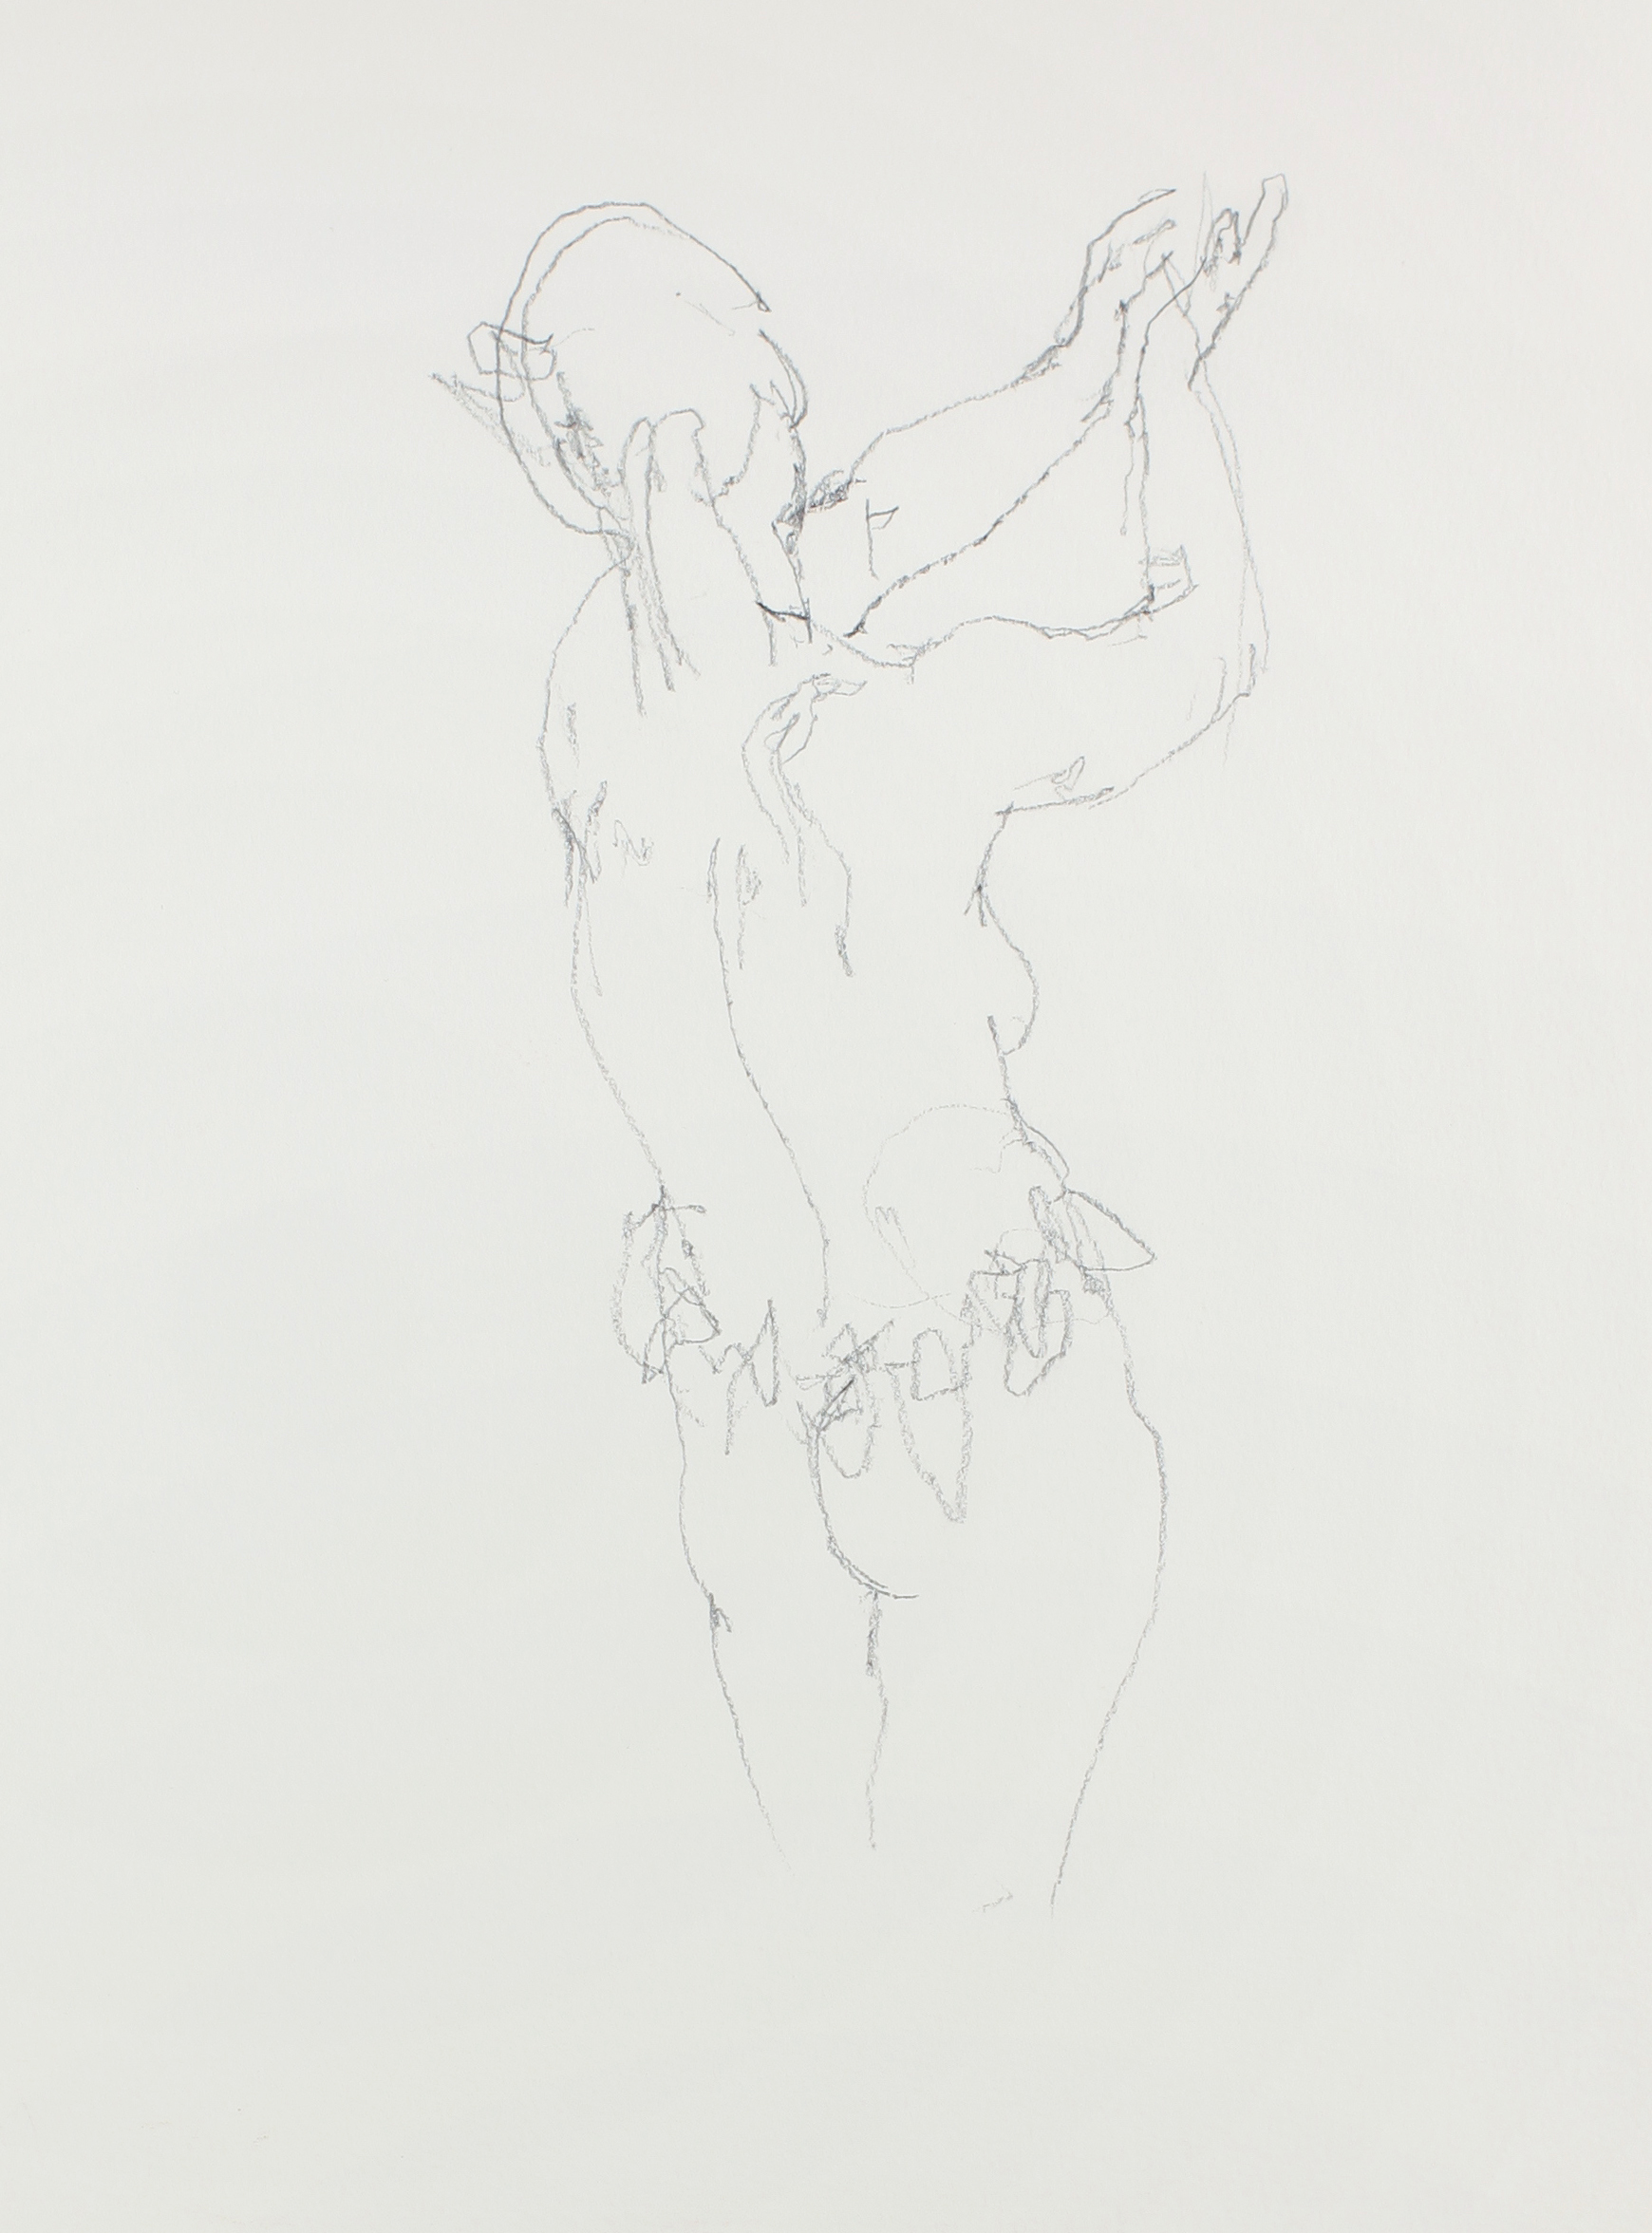 2003_Study_for_Death_of_Orpheus_pencil_on_paper_15x11in_WPF261.jpg